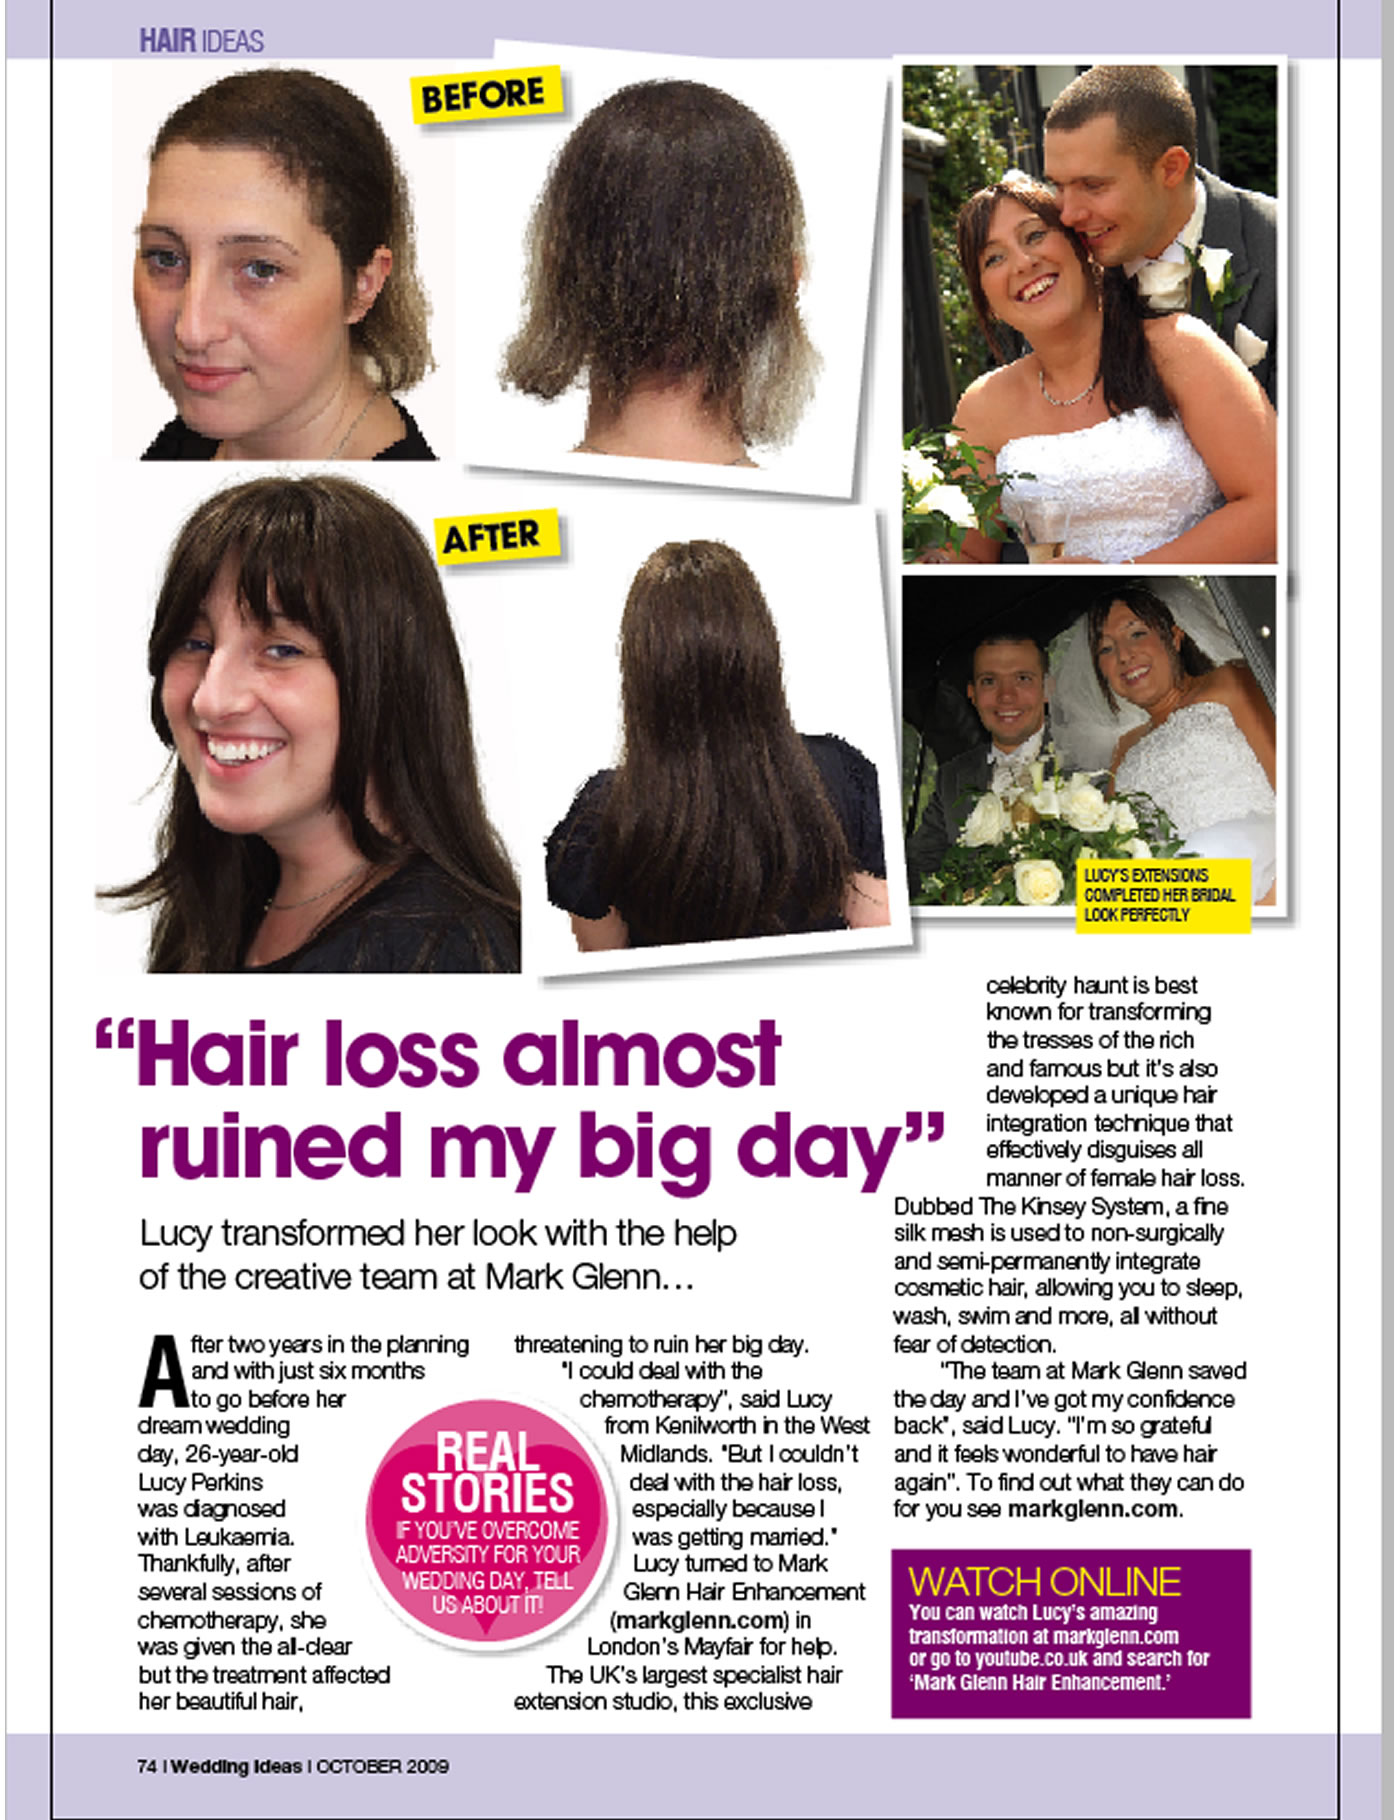 'Chemotherapy hair loss almost ruined my wedding - but Mark Glenn saved the day' - Wedding Ideas Magazine